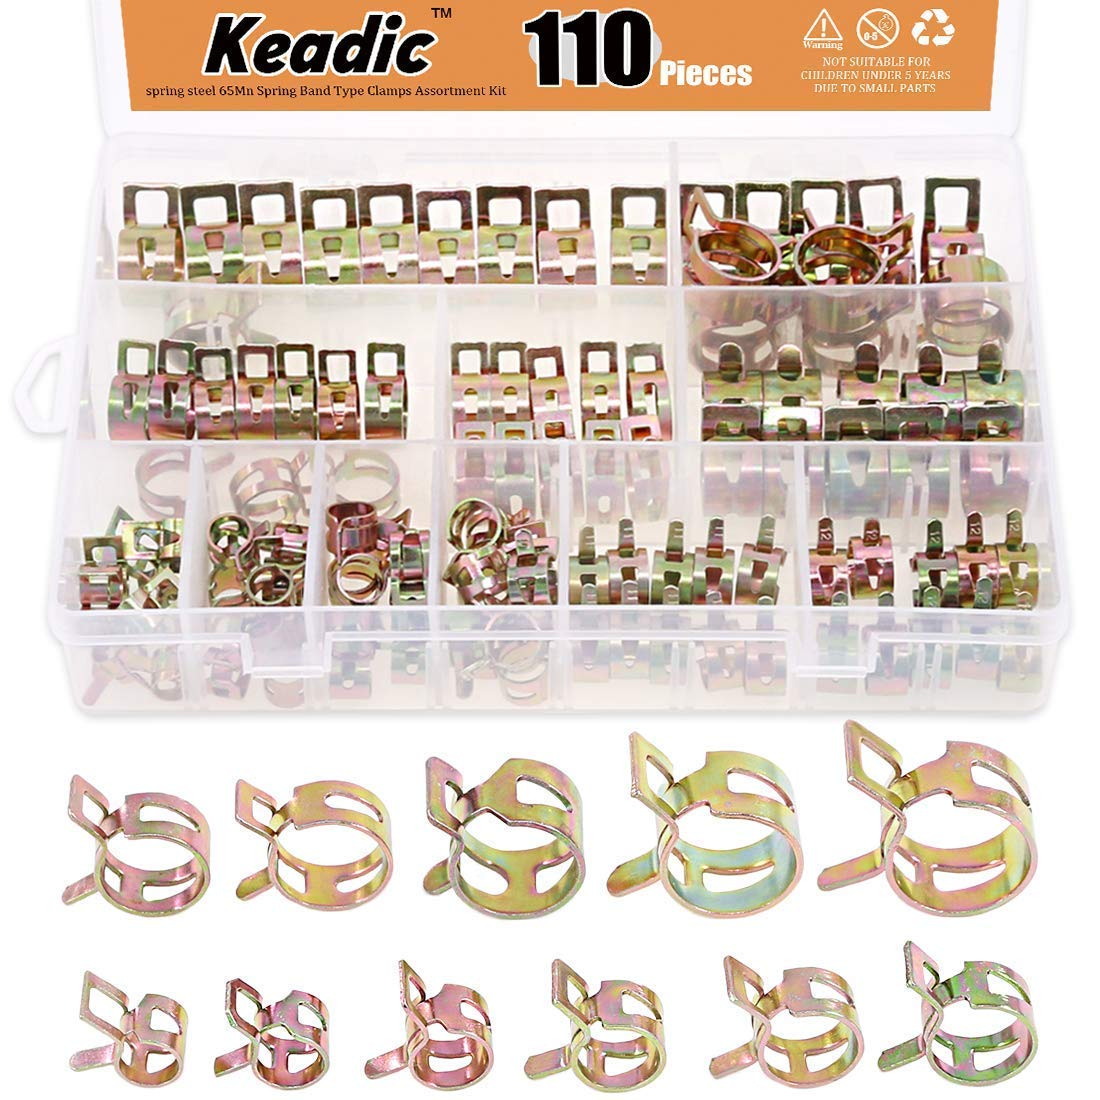 Keadic 110Pcs [ 11 Size ] 7mm to 17mm Spring Hose Clamp Vacuum Clamp Spring Band Type Clamps Action Fuel/Silicone Vacuum Hose Pipe Clamp Low Pressure Air Clip Clamps Fasteners Assortment Kit